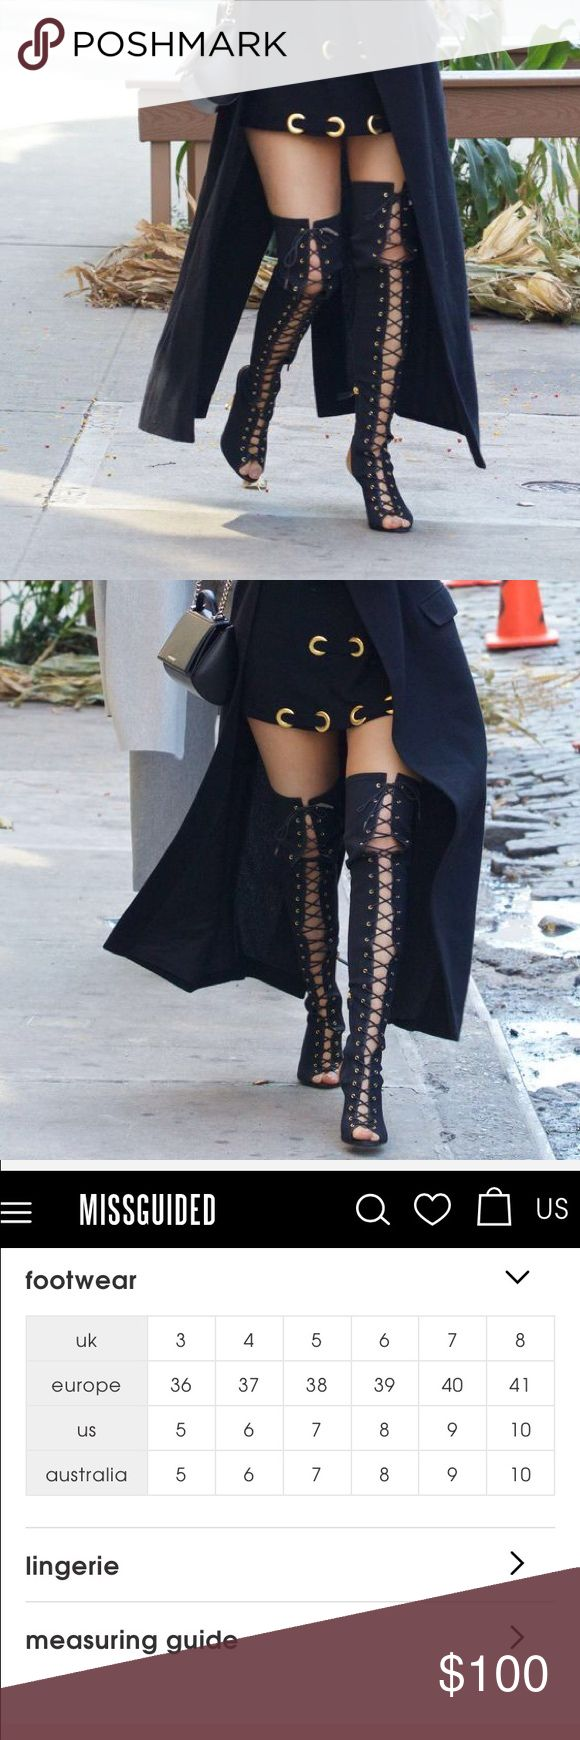 Over the knee lace up gladiator boots Kylie Jenner has the same ones, when she came out on her app where she got them I went and bought them for $120.00. There from missguided only worn for a couple hours then never again. U.S. Size 7. Asking $100 or OBO Missguided Shoes Over the Knee Boots